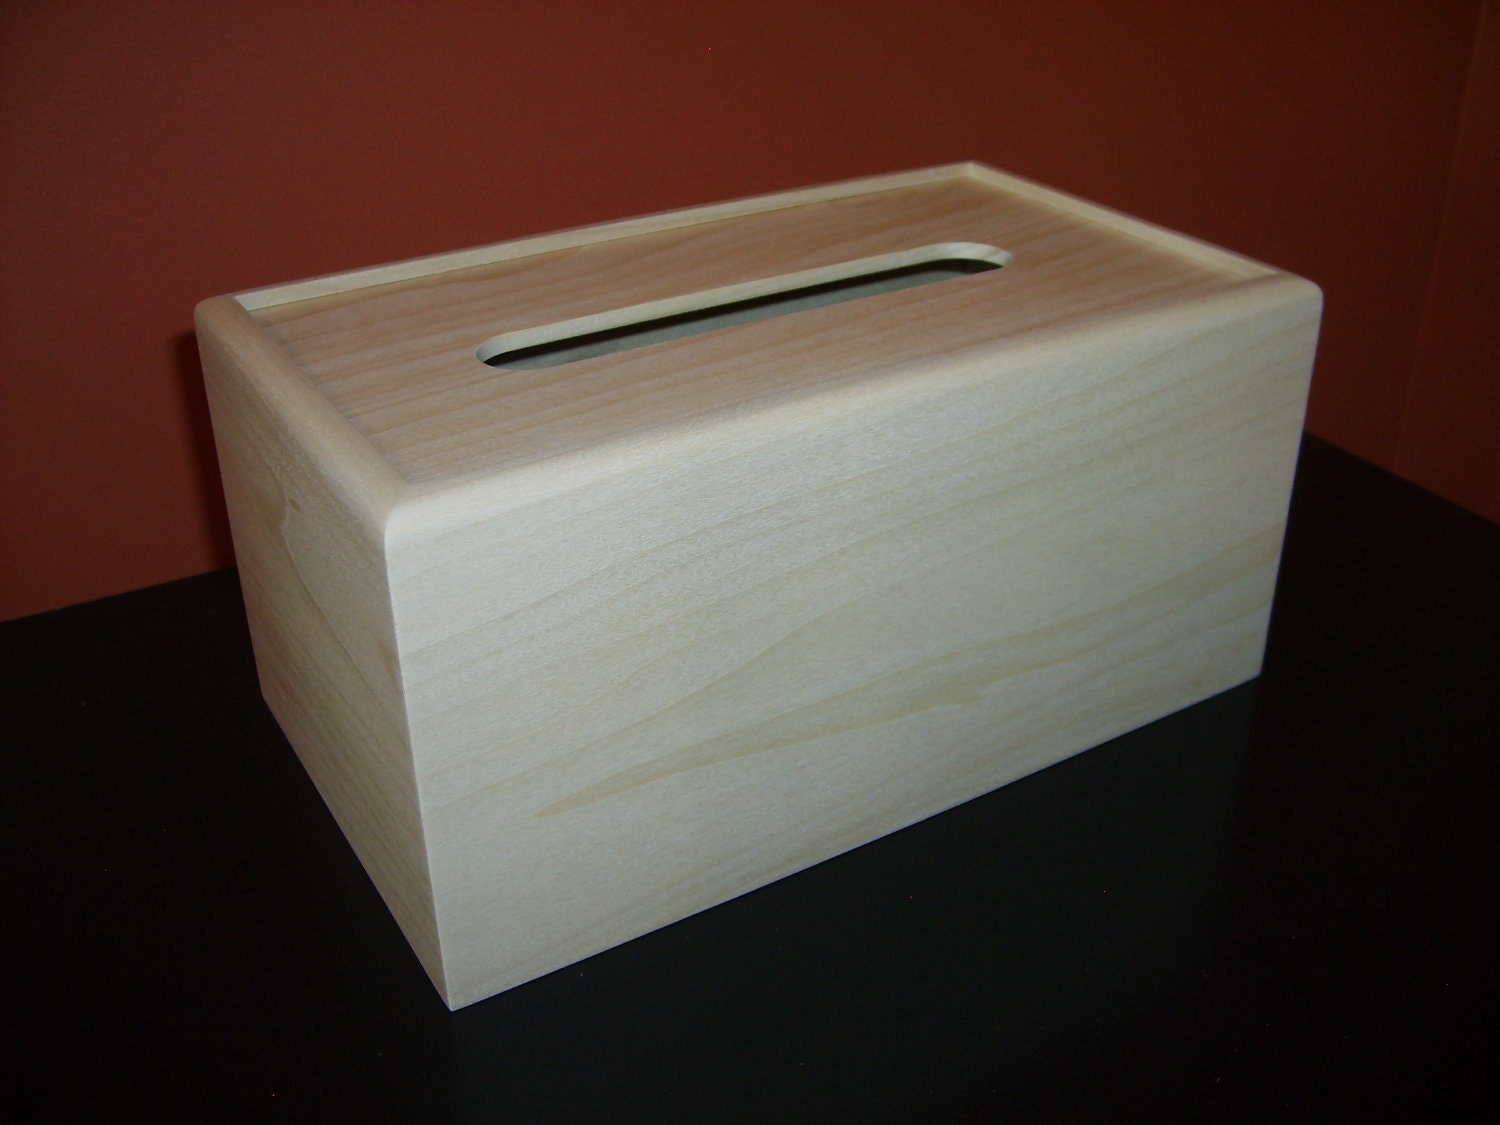 Unfinished Wood Tissue Box Cover Kleenex 160 Count 2 Ply